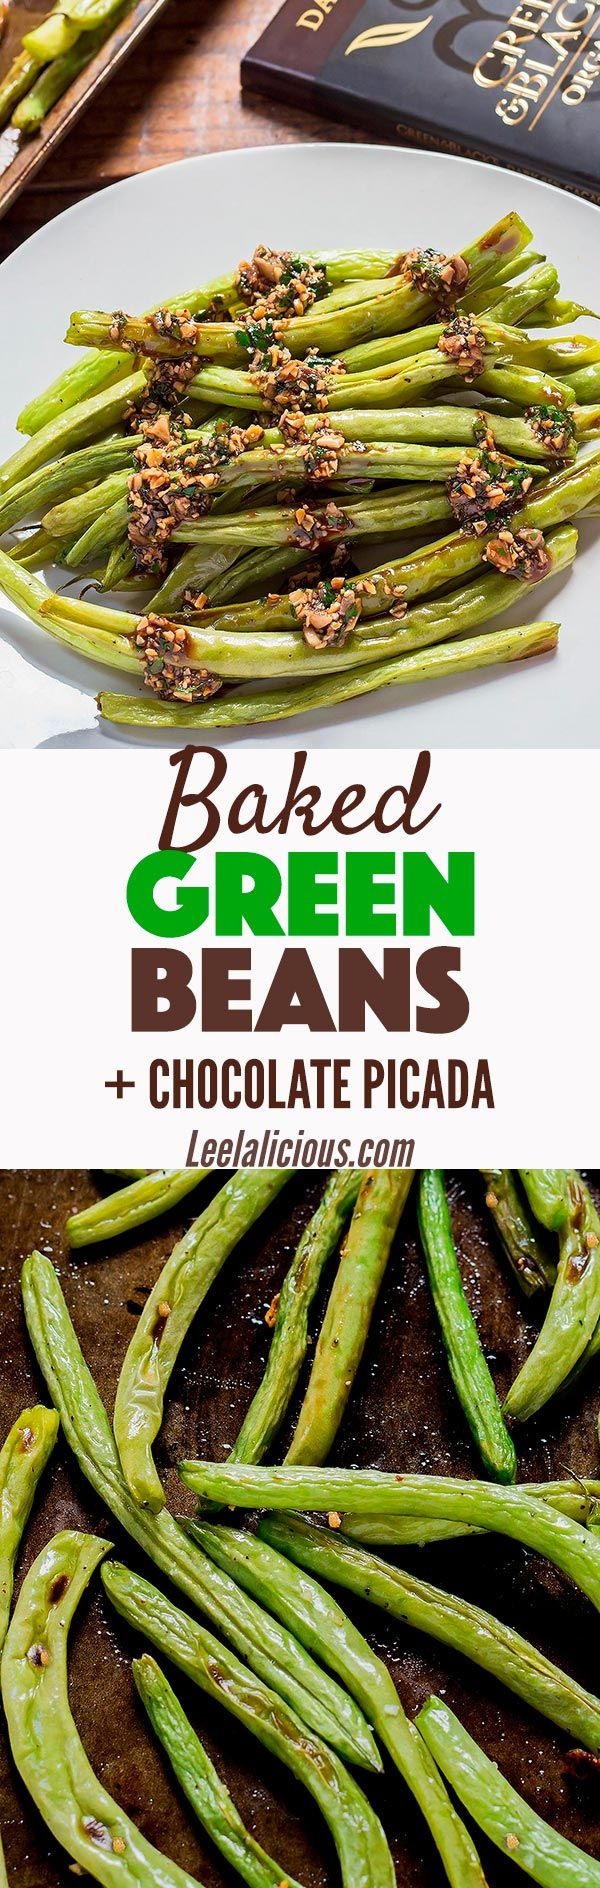 These Baked Green Beans with Chocolate Picada make a great holiday side dish with a twist. The pesto-like sauce with almonds, parsley, garlic and chocolate gives roasted green beans an exciting makeover.  Healthy | Recipe | Thanksgiving | Vegetables | How to Cook | Easy | Parmesan